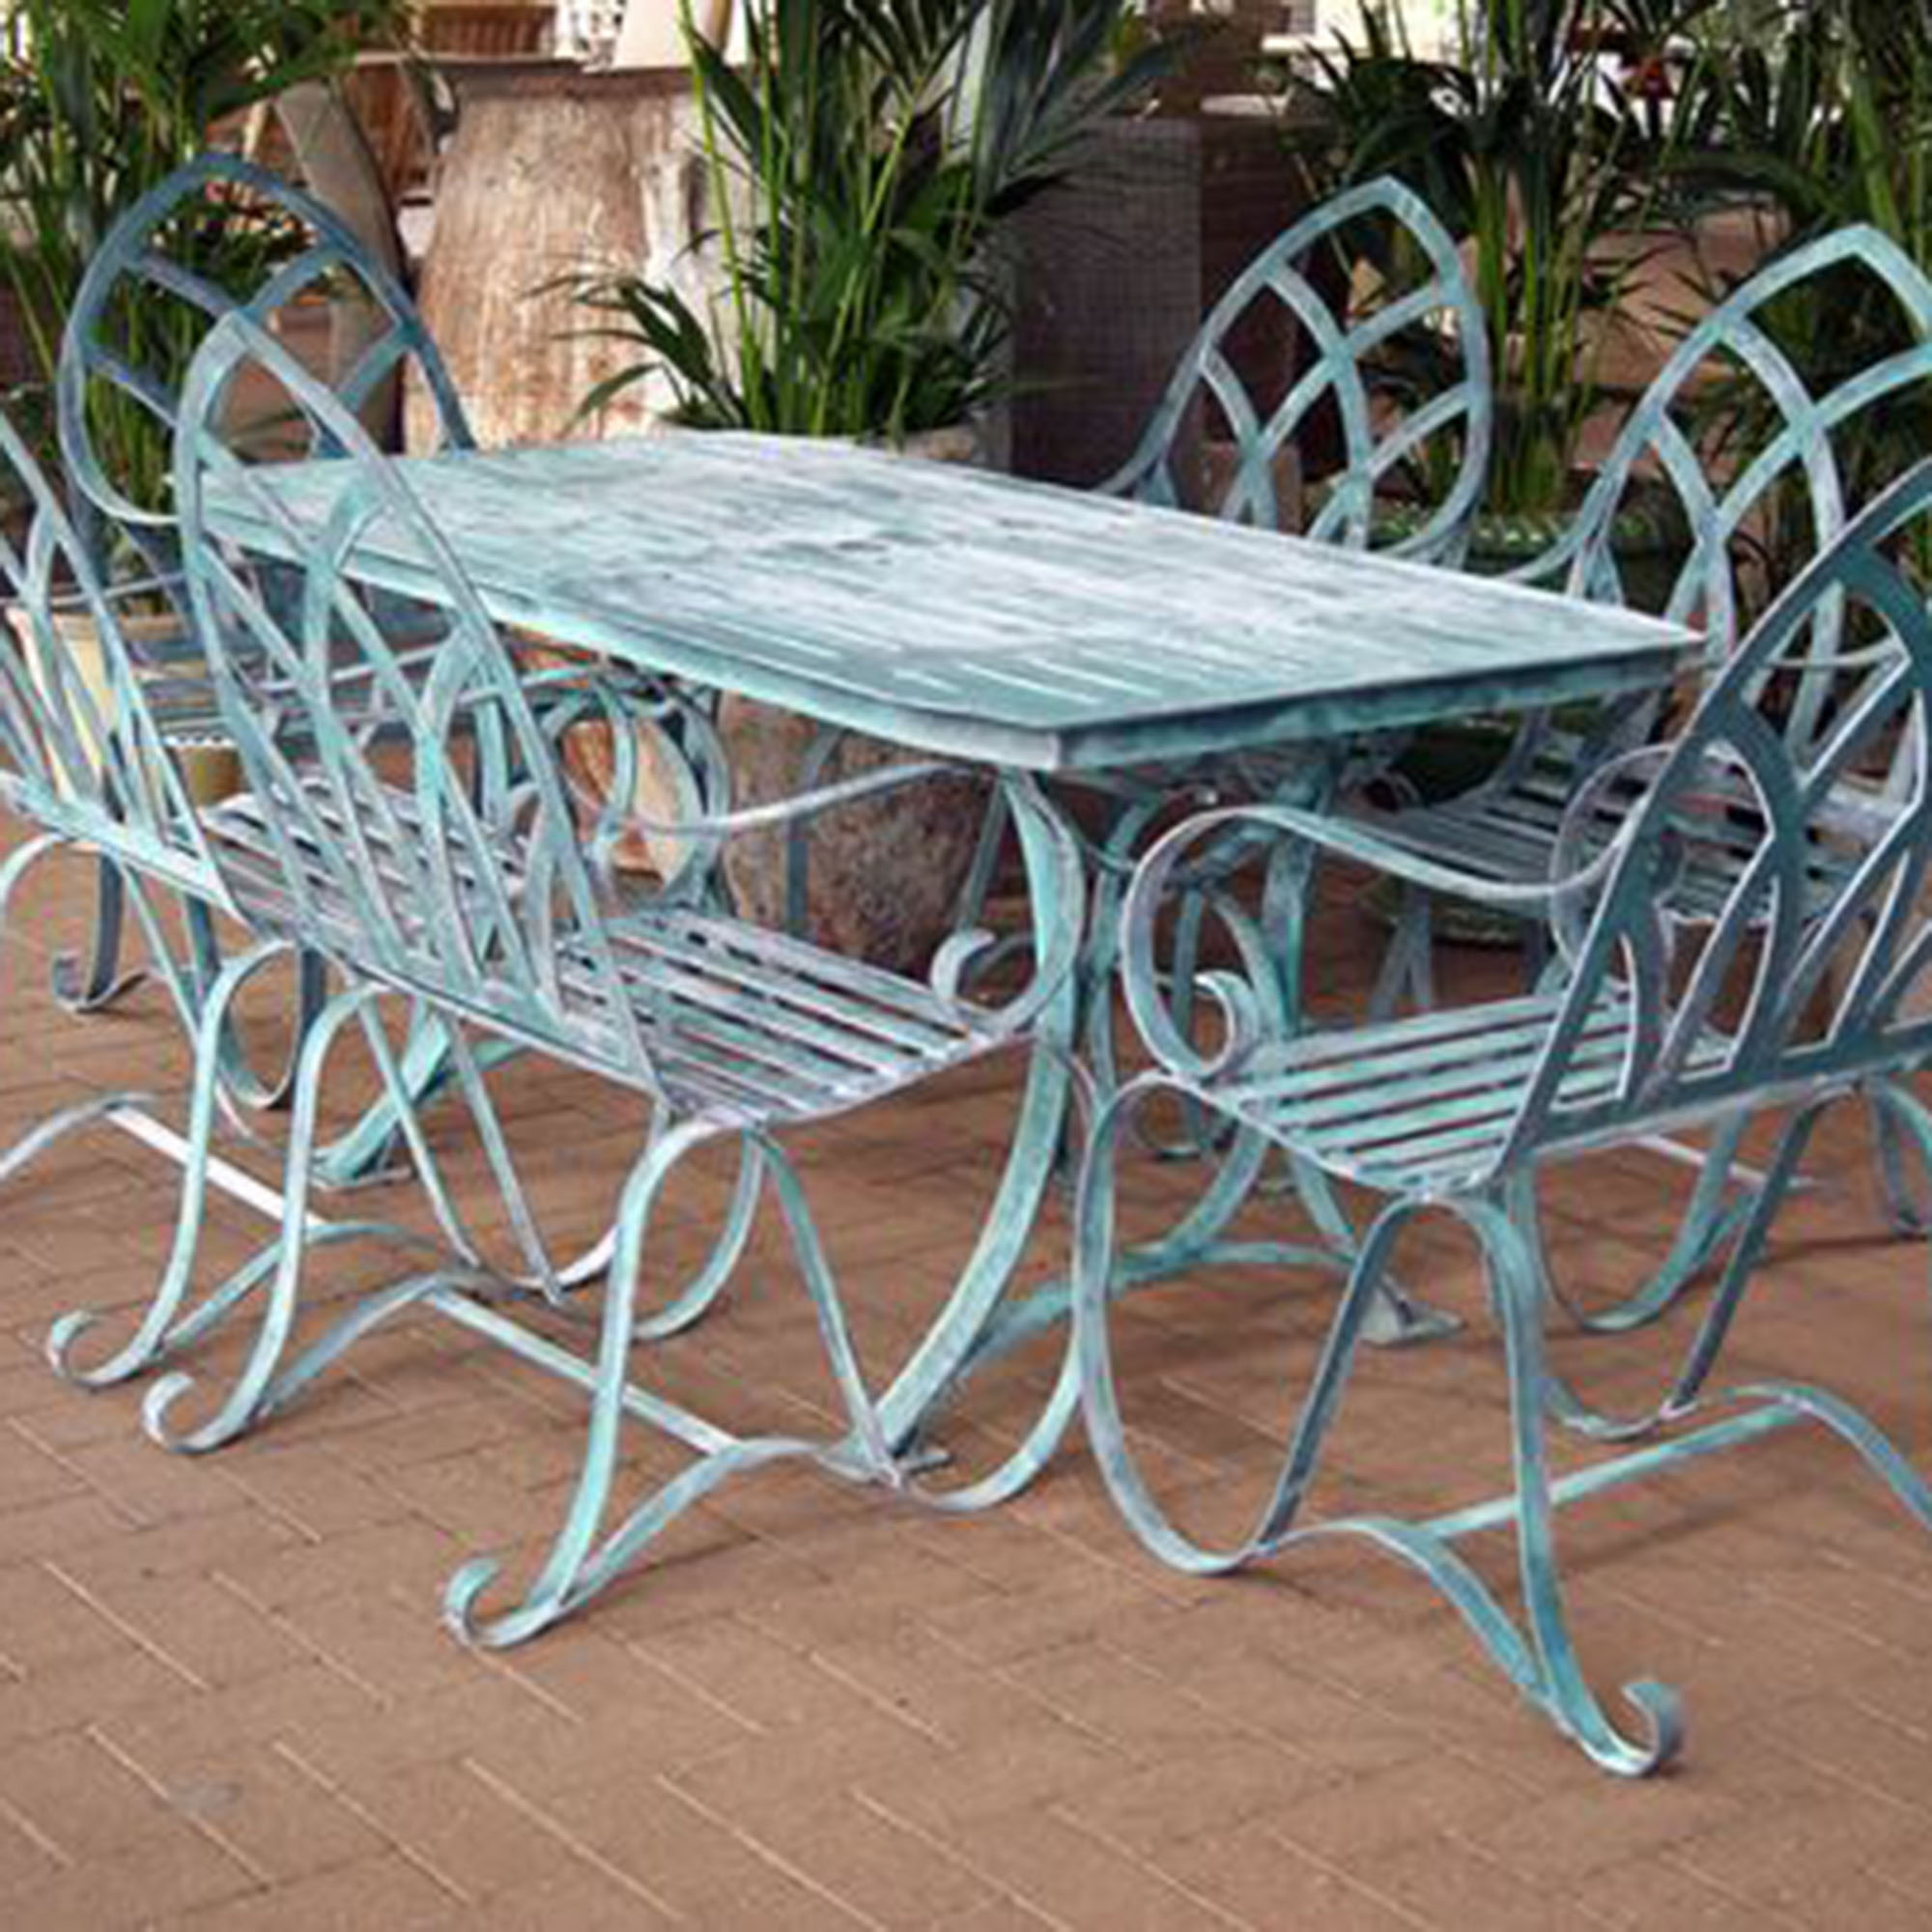 Metal Garden Chairs Why You Should Buy Cast Aluminum Garden Furniture